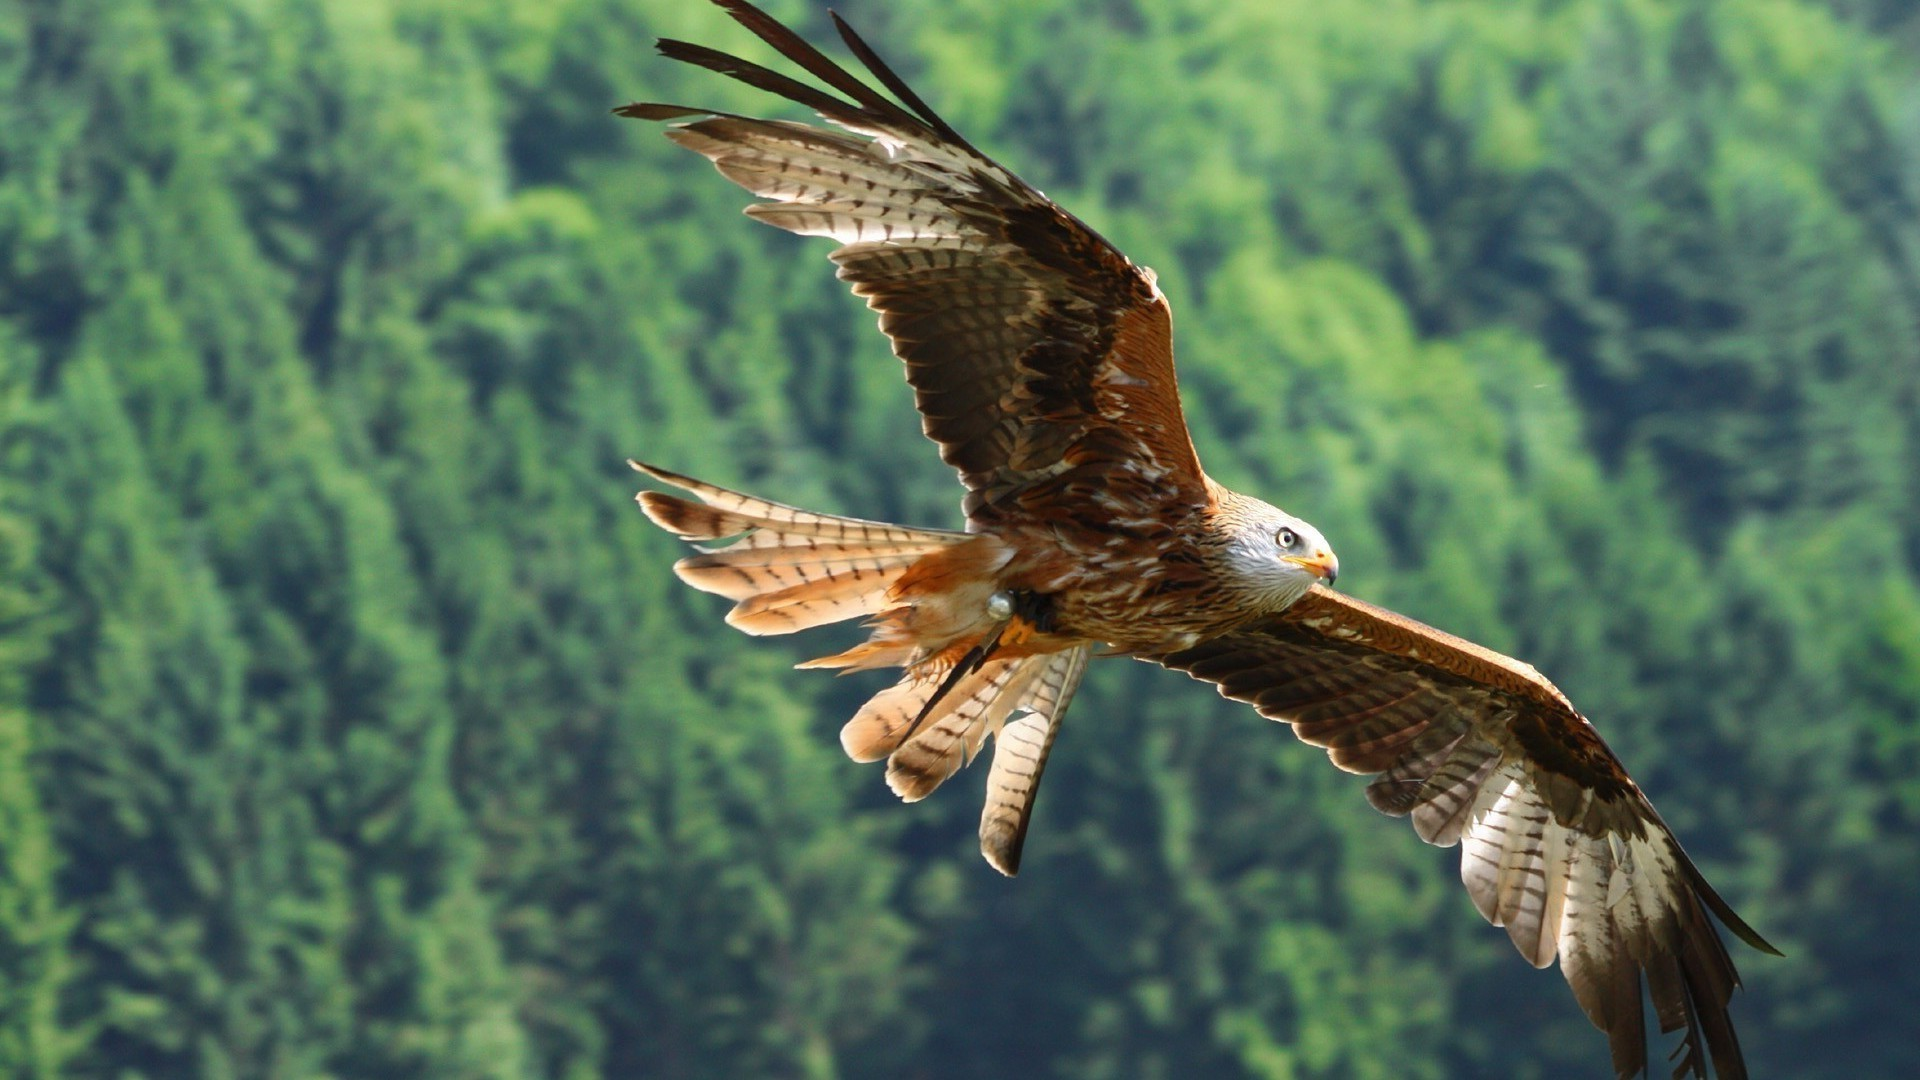 Hawk In Flight IPhone Wallpapers For Free